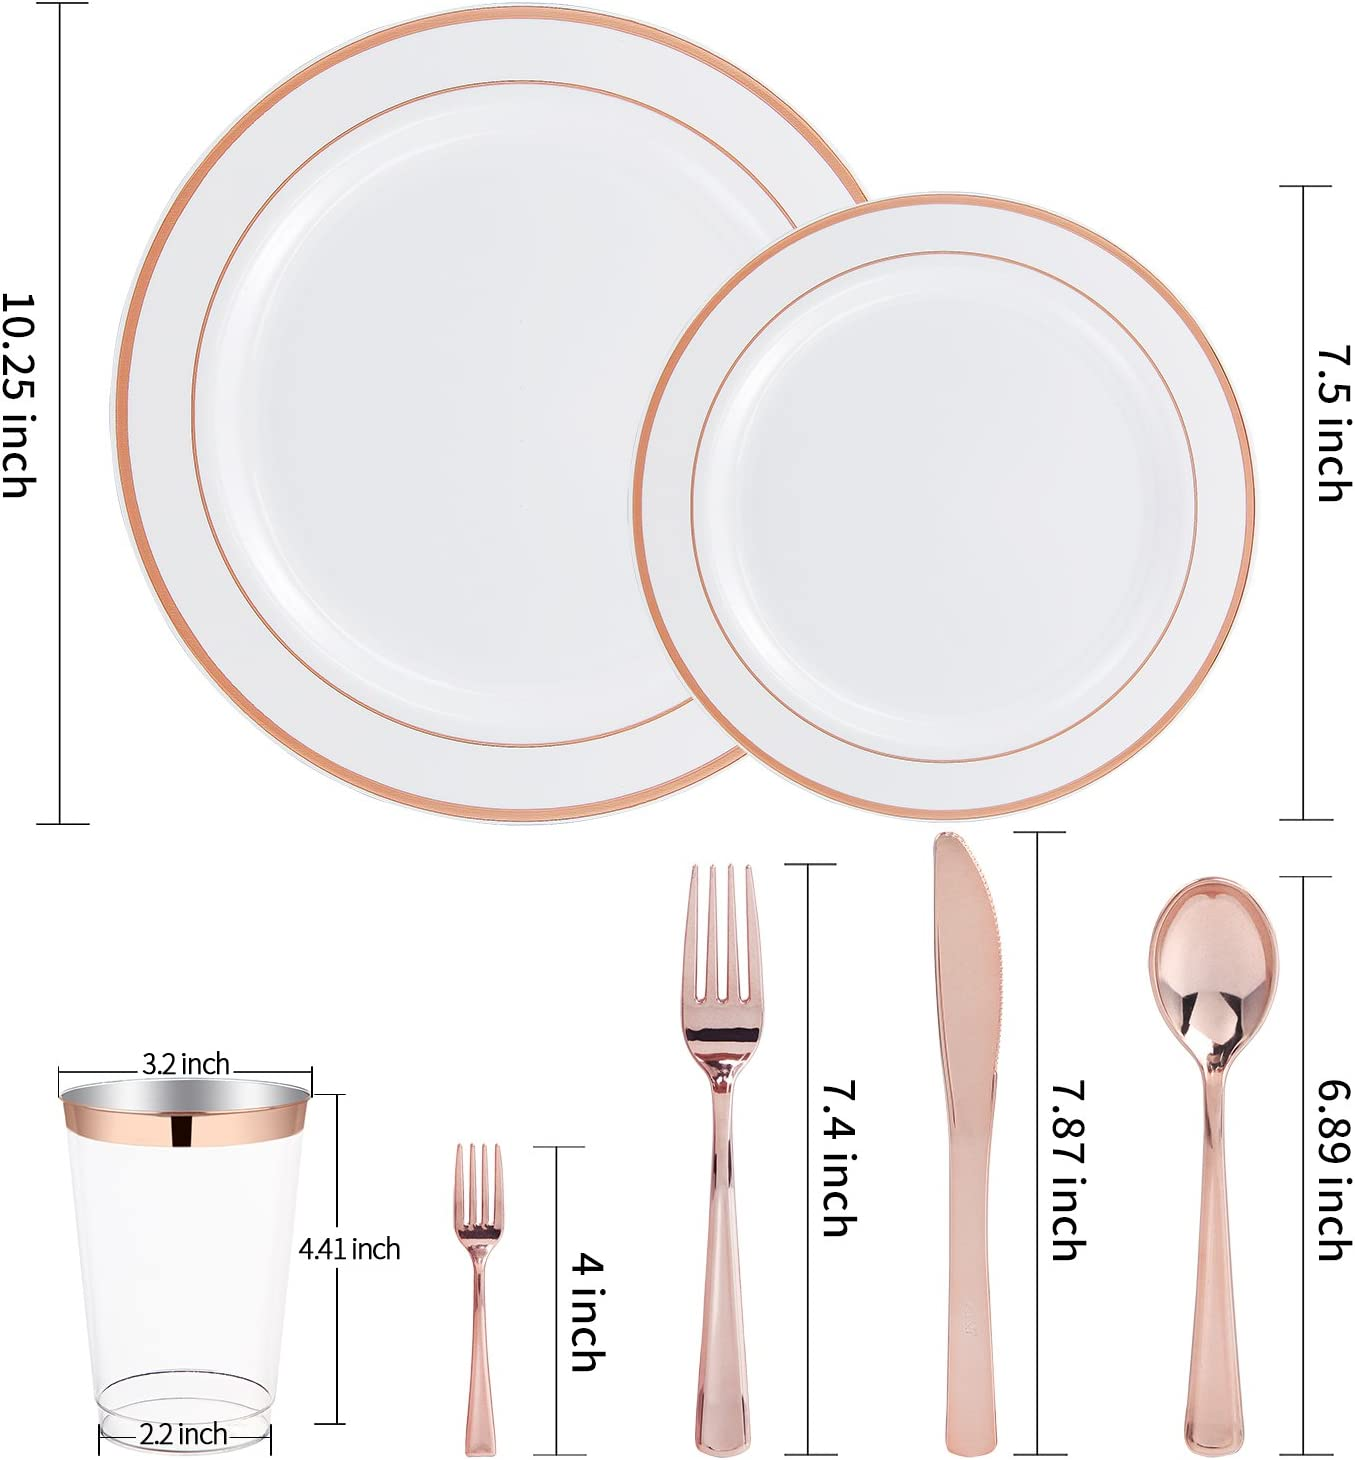 WDF 150pcs Gold Plastic Plates with Disposable Plastic Silverware/&Gold Cups 25 Spoons/& 10oz Plastic Cups 25 Knives Gold Glitter Design Include 25 Dinner Plates,25 Salad Plates,25 Forks